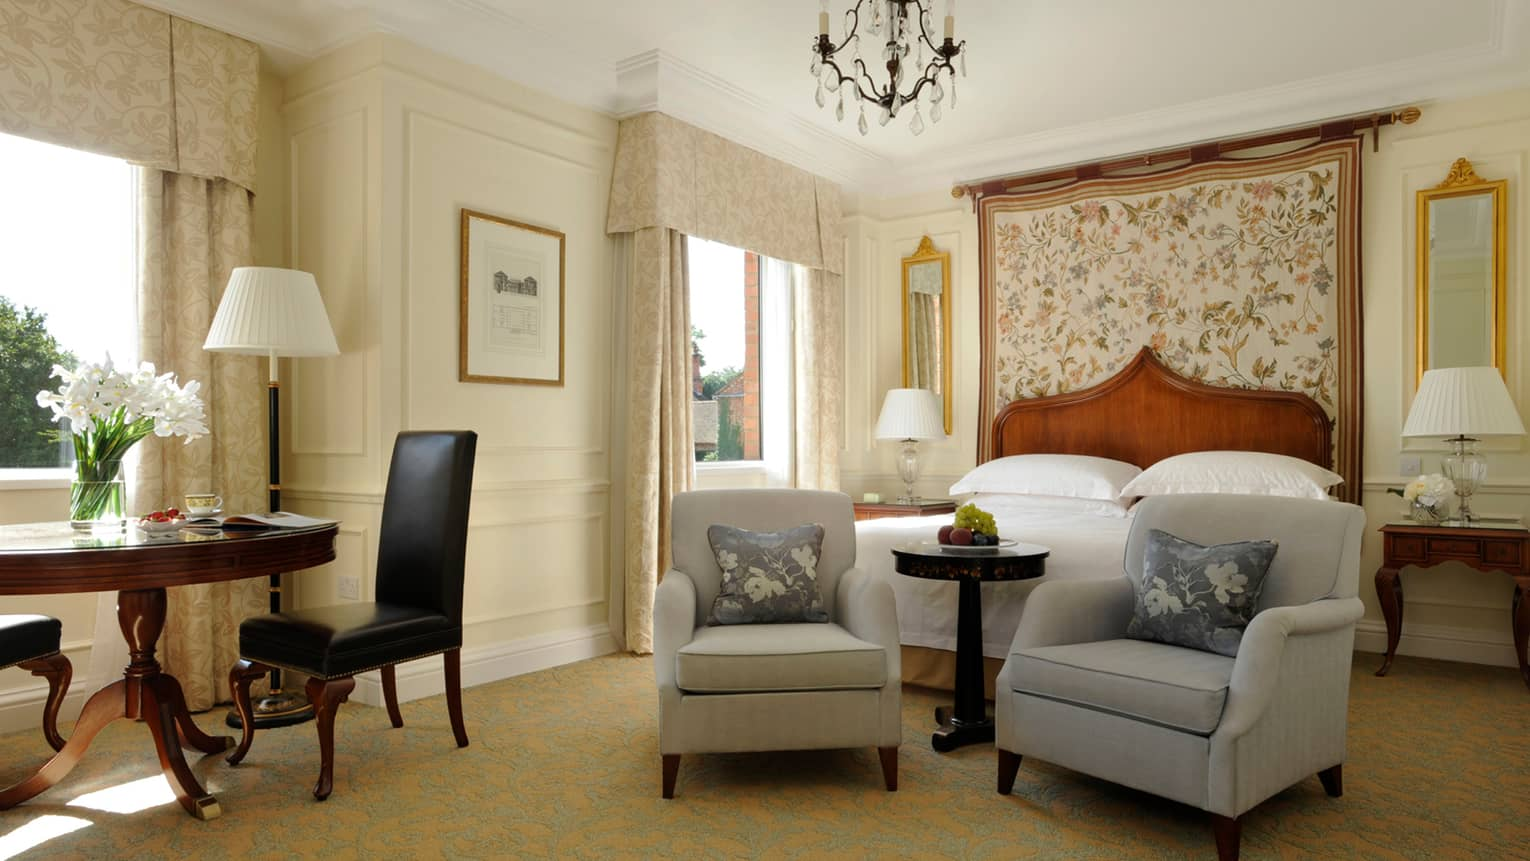 Heritage Room, two armchairs at foot of bed with floral headboard, desk by window